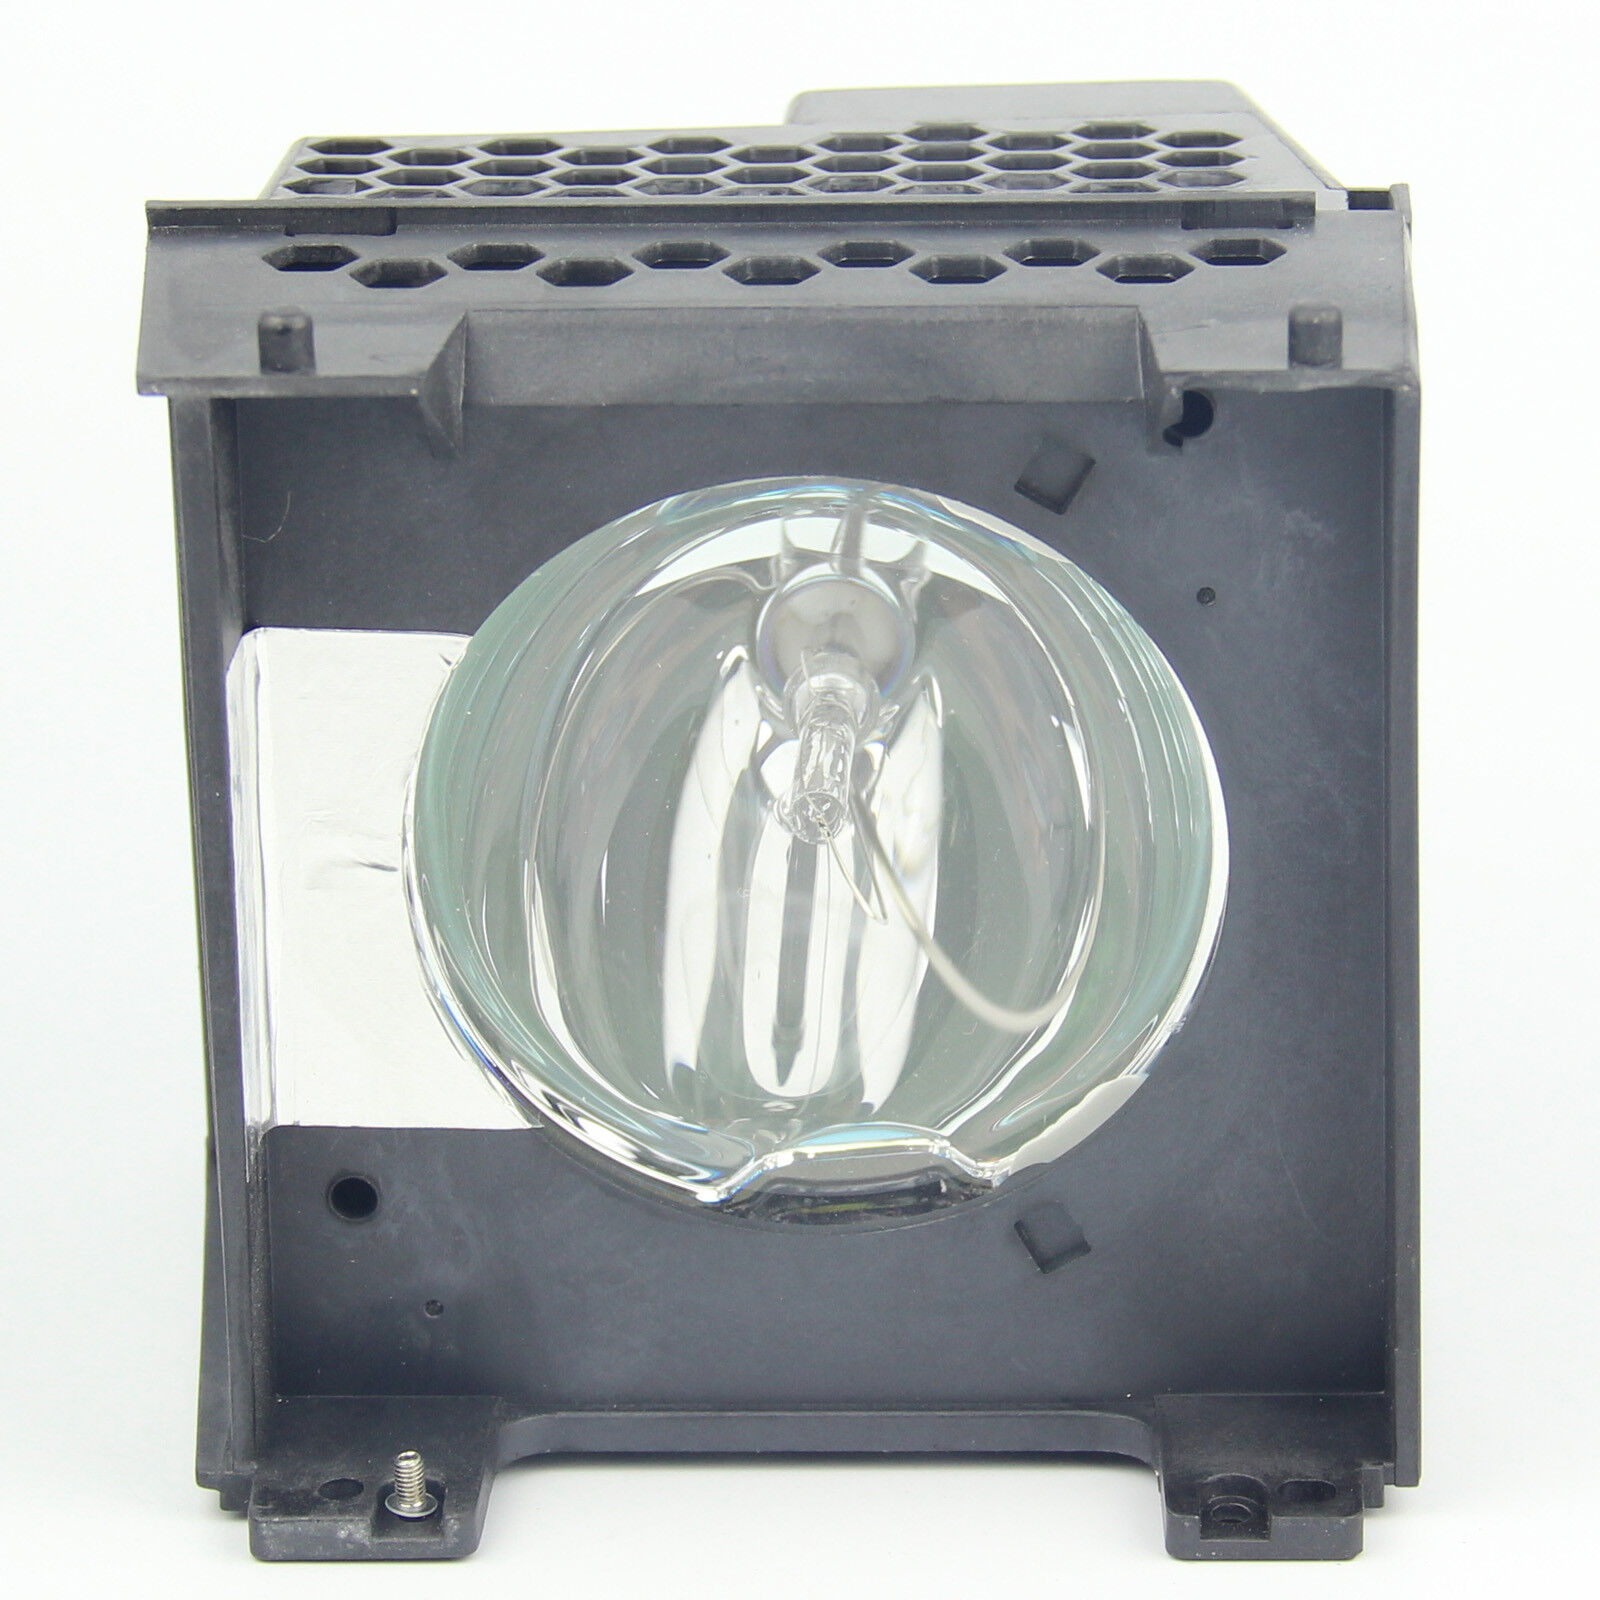 NEW 72514011 Y66-LMP  Lamp With Housing For TOSHIBA Tvs 56HMX96  56HM66  56HM16